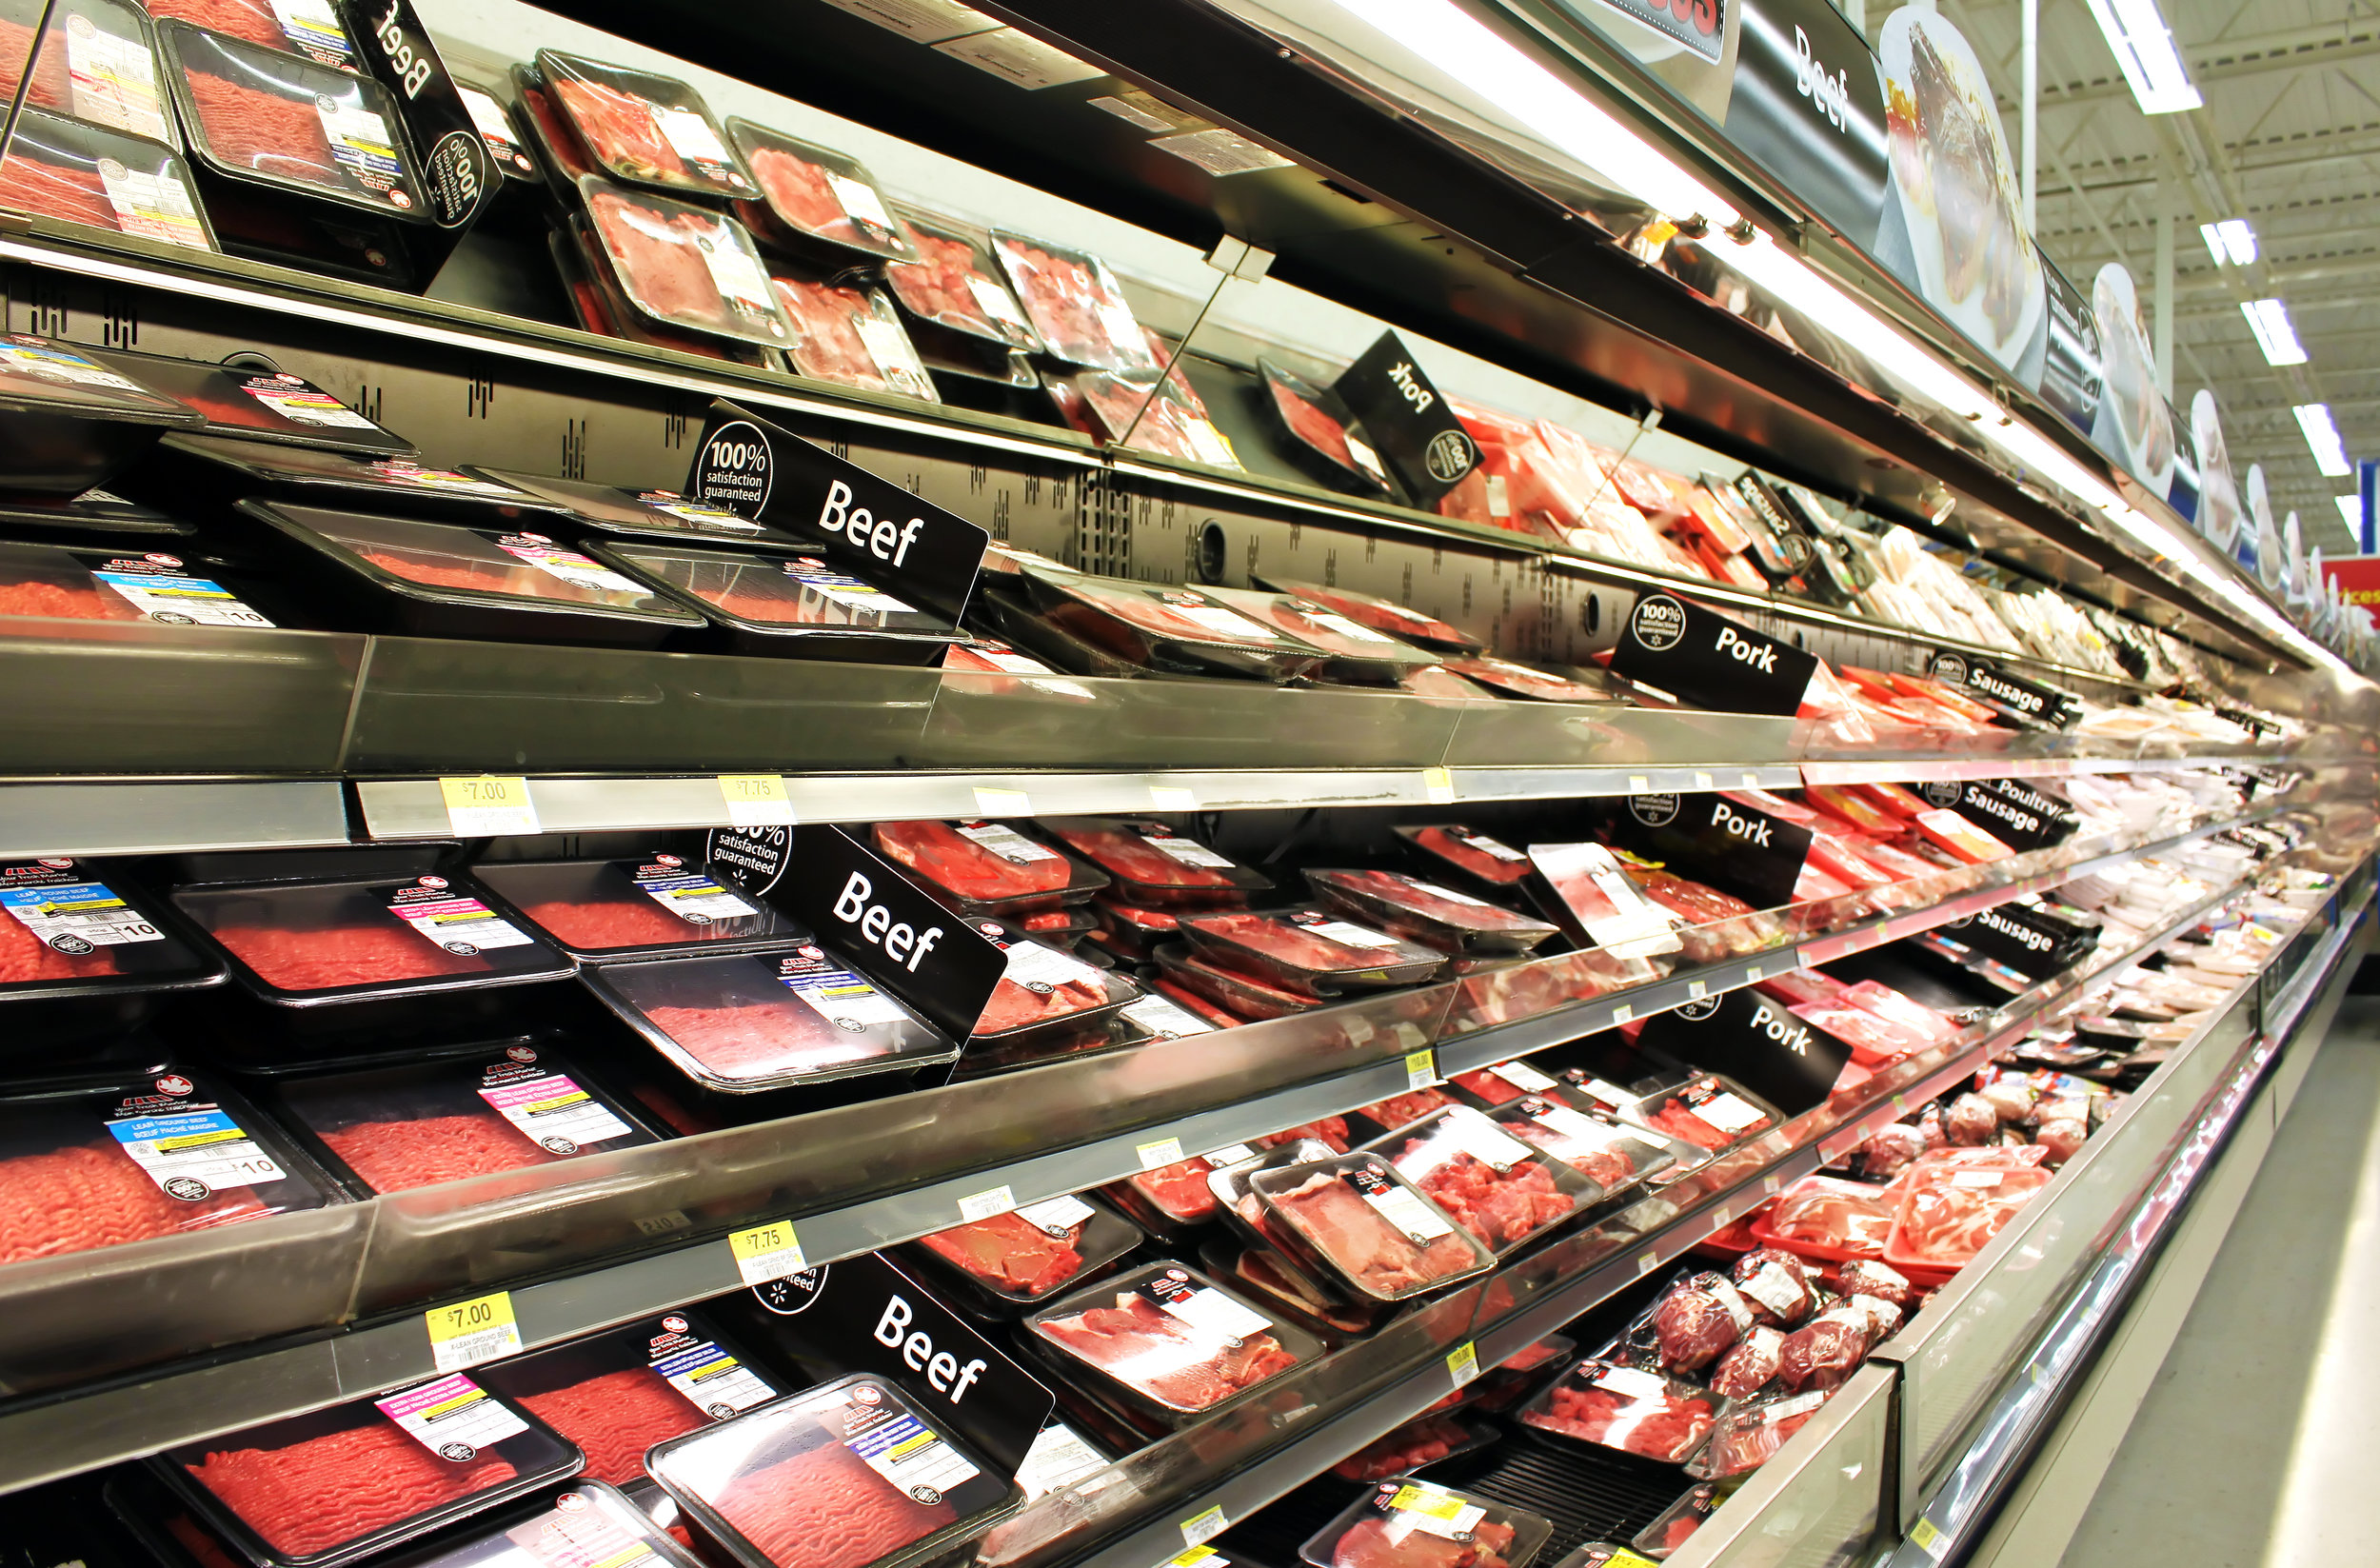 Meat and poultry products on shelves in a supermarket.jpg